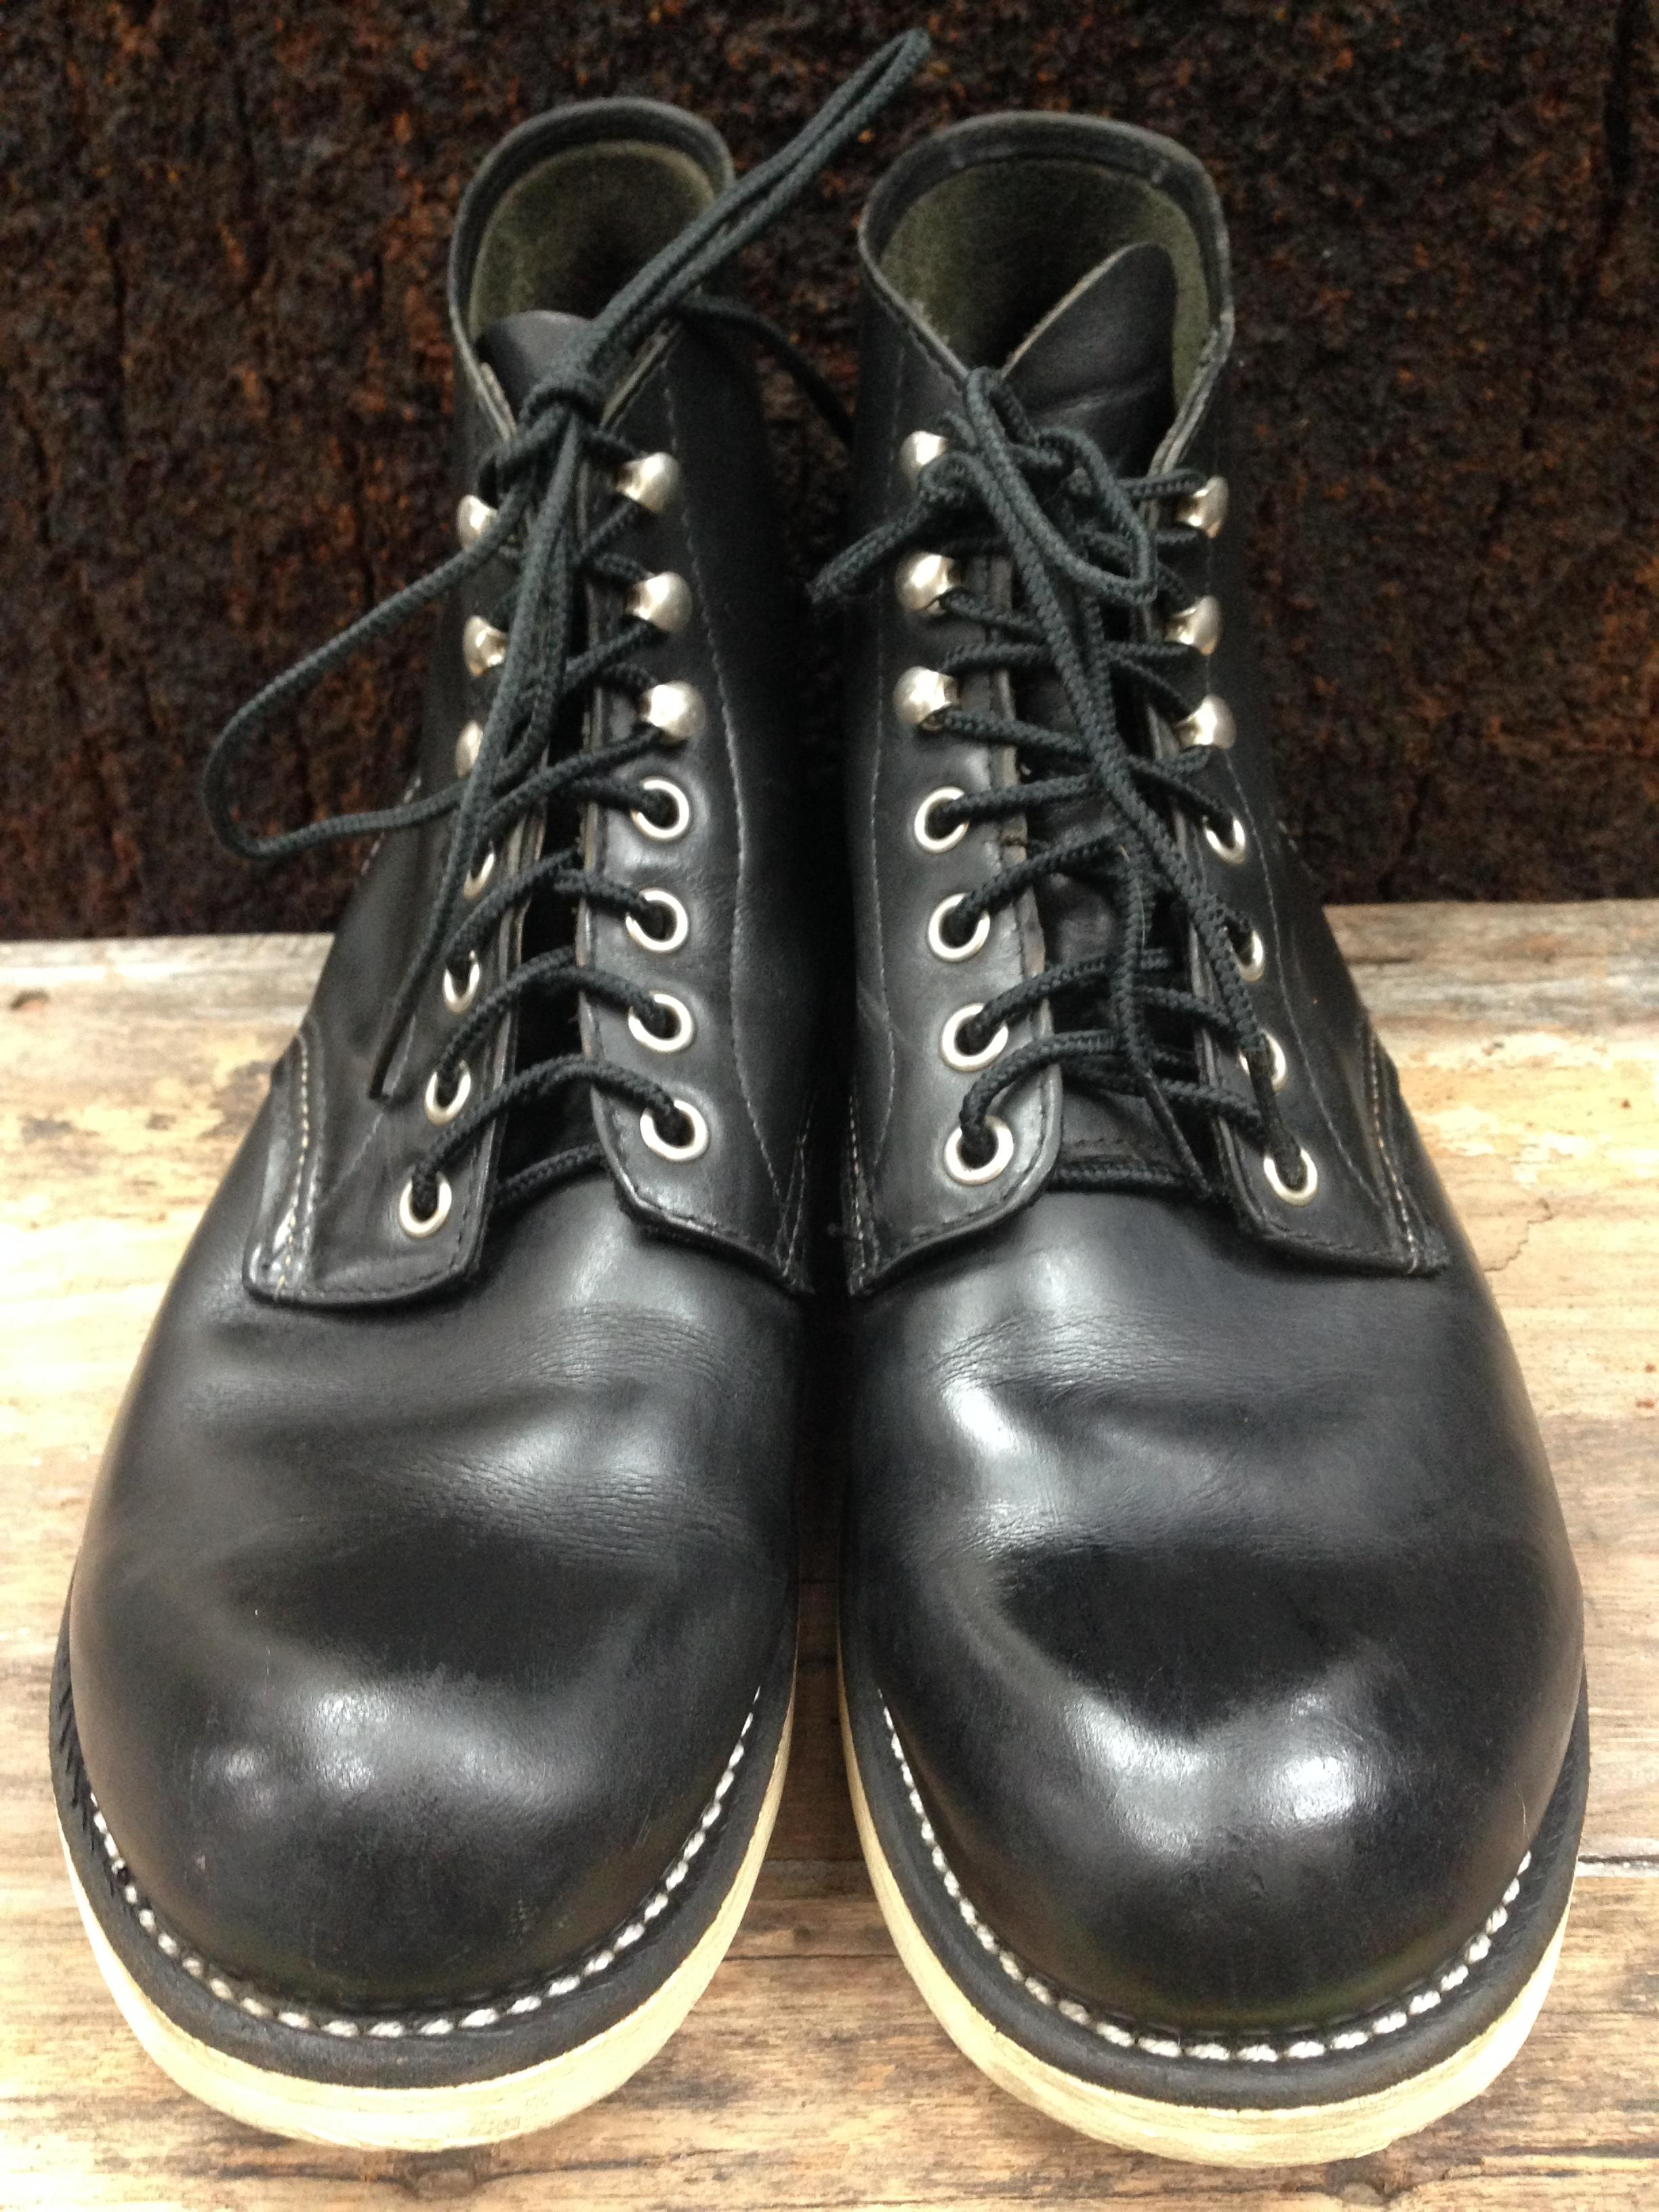 *11.RED WING 8165 made in USA size 8Dราคา 3500*